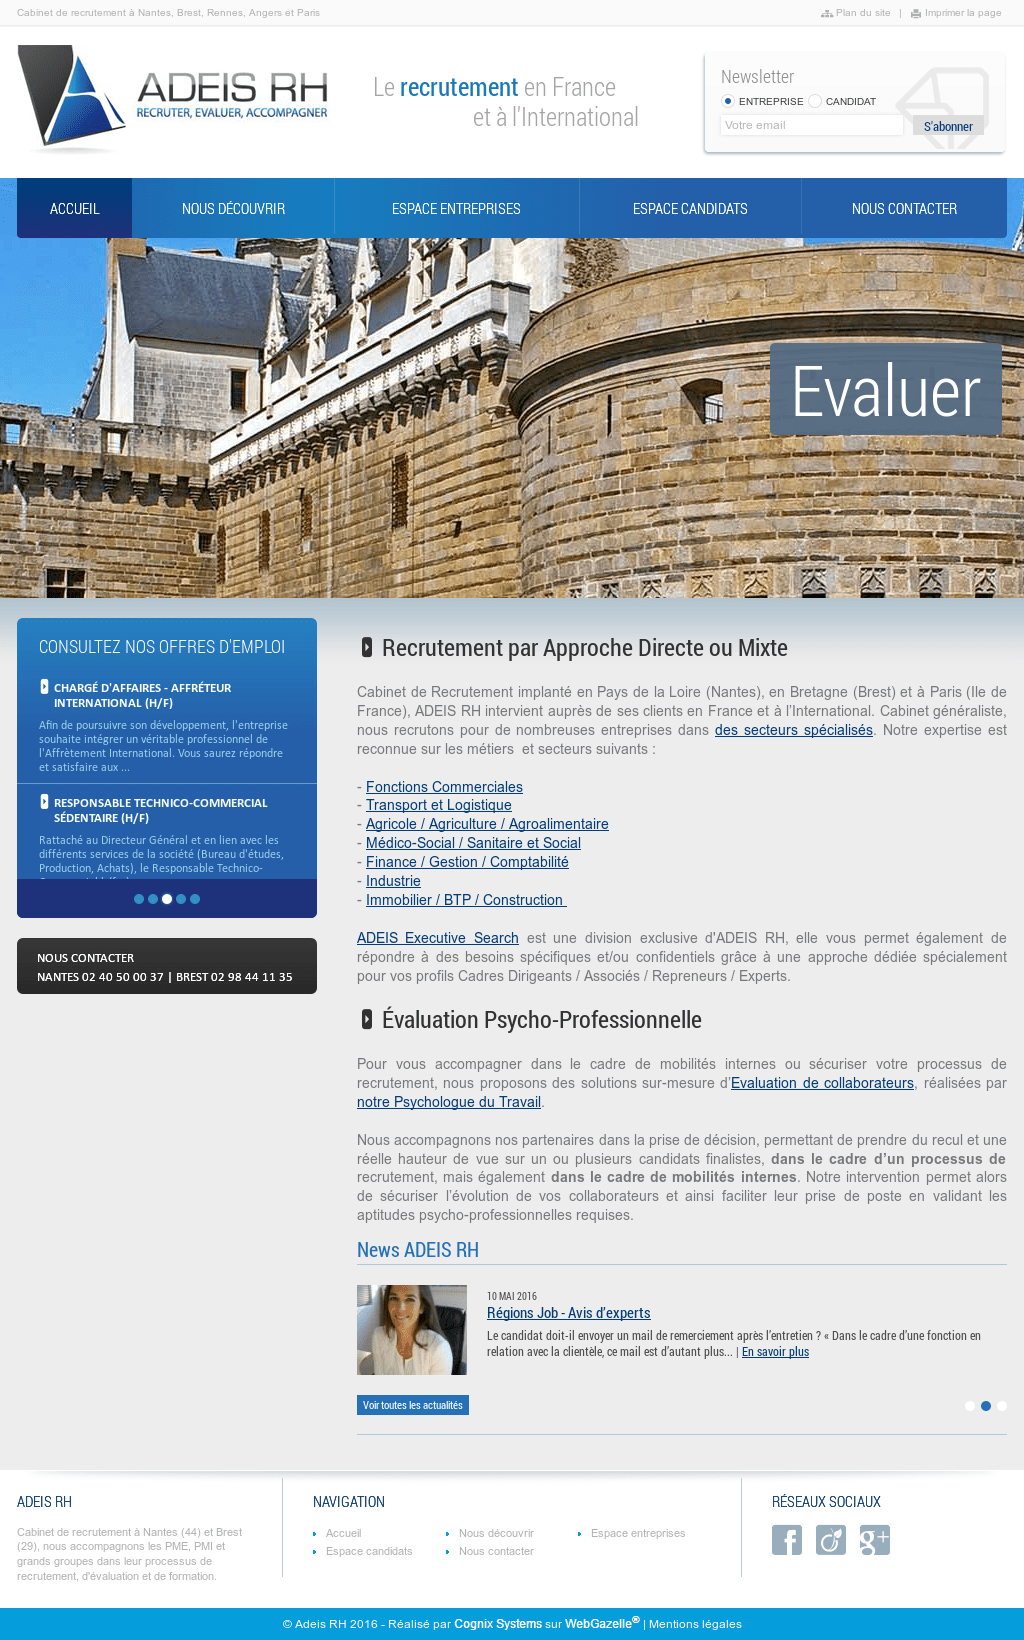 Cabinet De Recrutement Nantes Adeis Rh Competitors Revenue And Employees Owler Company Profile